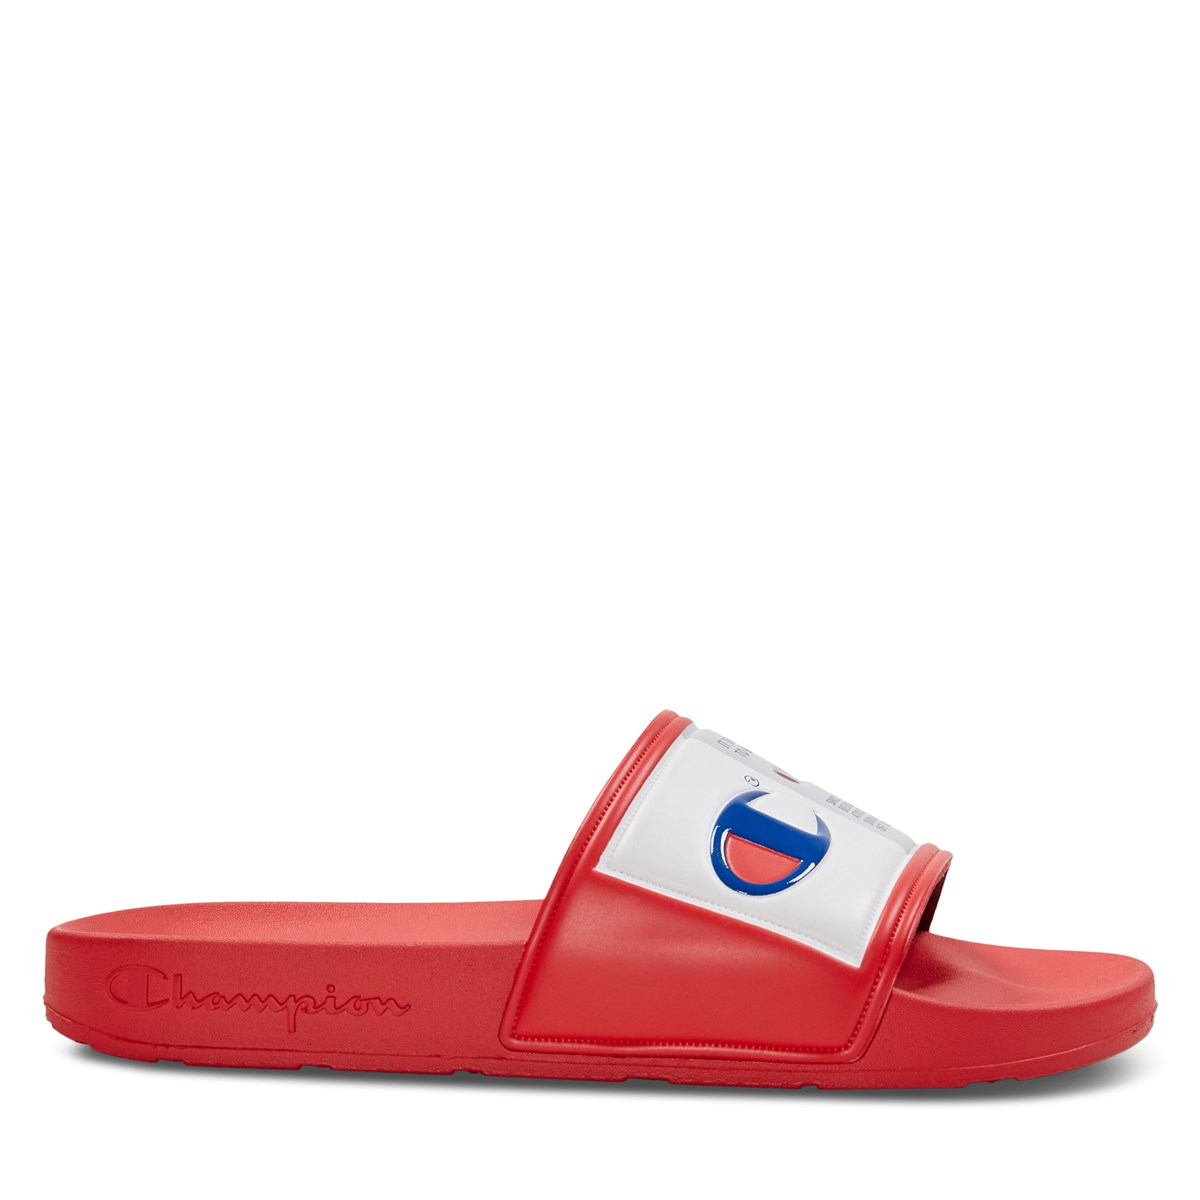 Men's IPO Jock Slides in Red